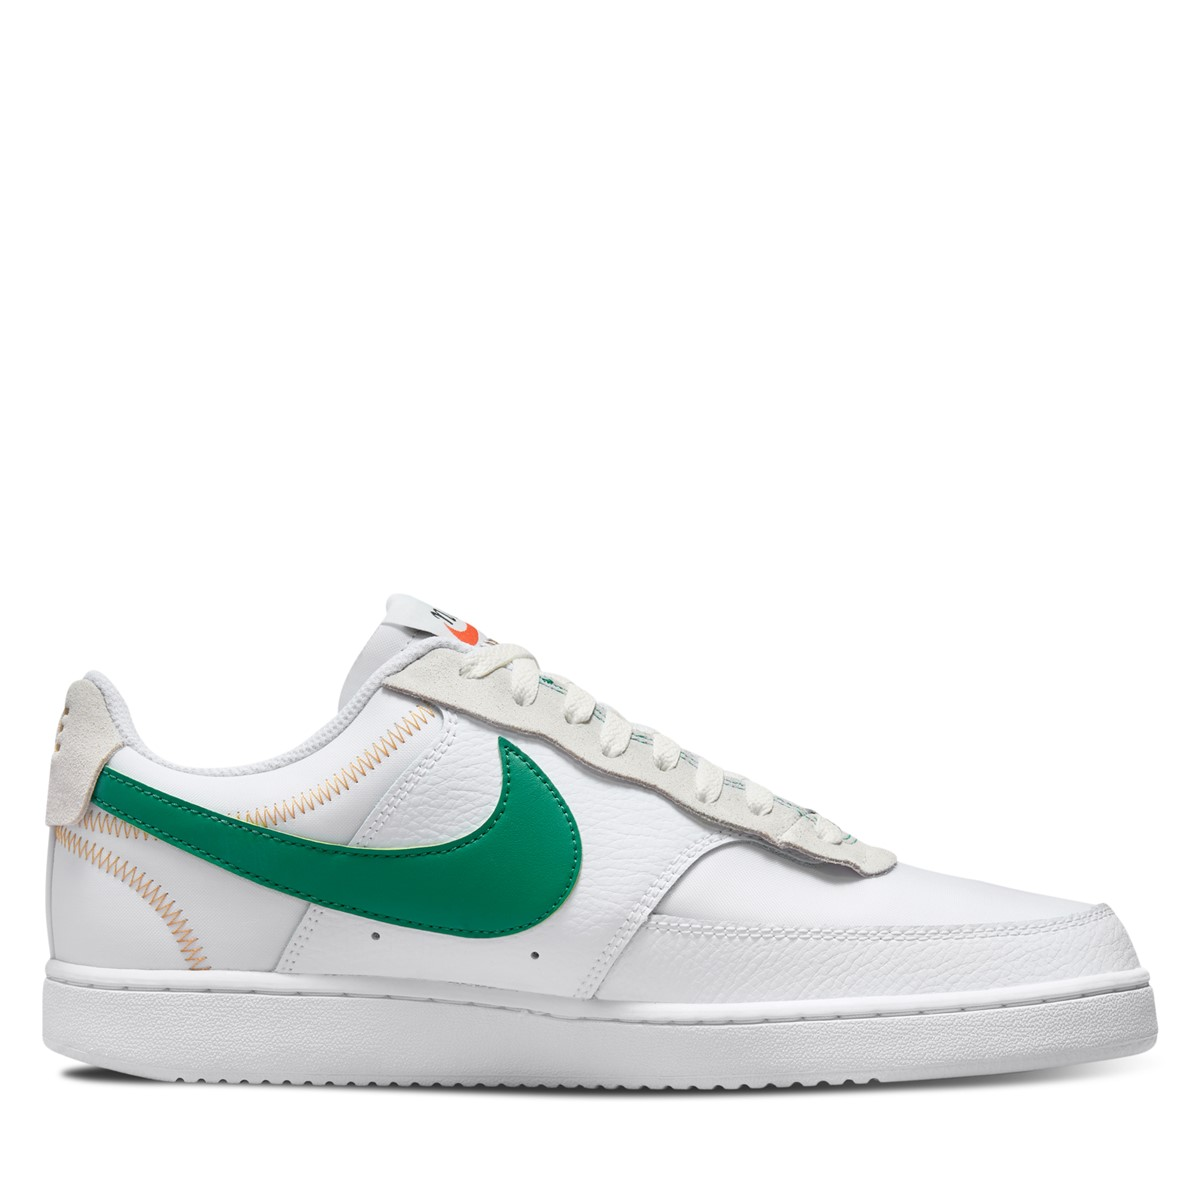 Men's Court Vision Low Premium Sneakers in White/Green